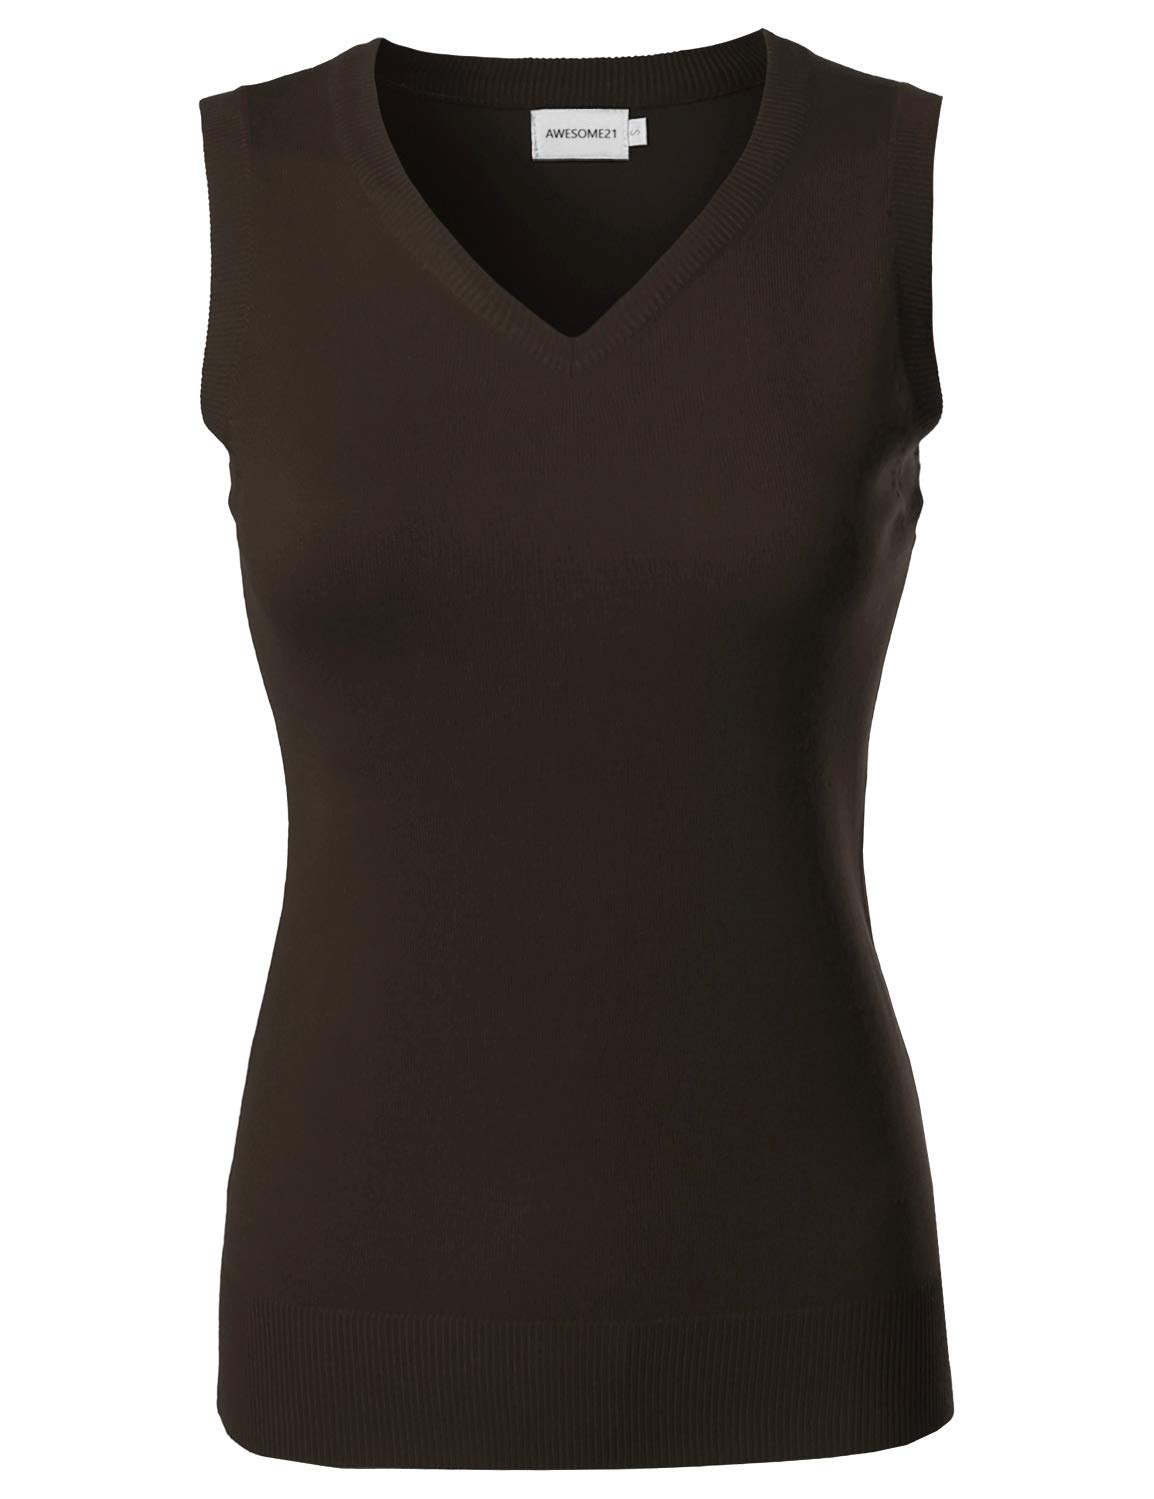 Awesome21 Solid Office Look Soft Stretch Sleeveless Viscose Knit Vest Top Brown S